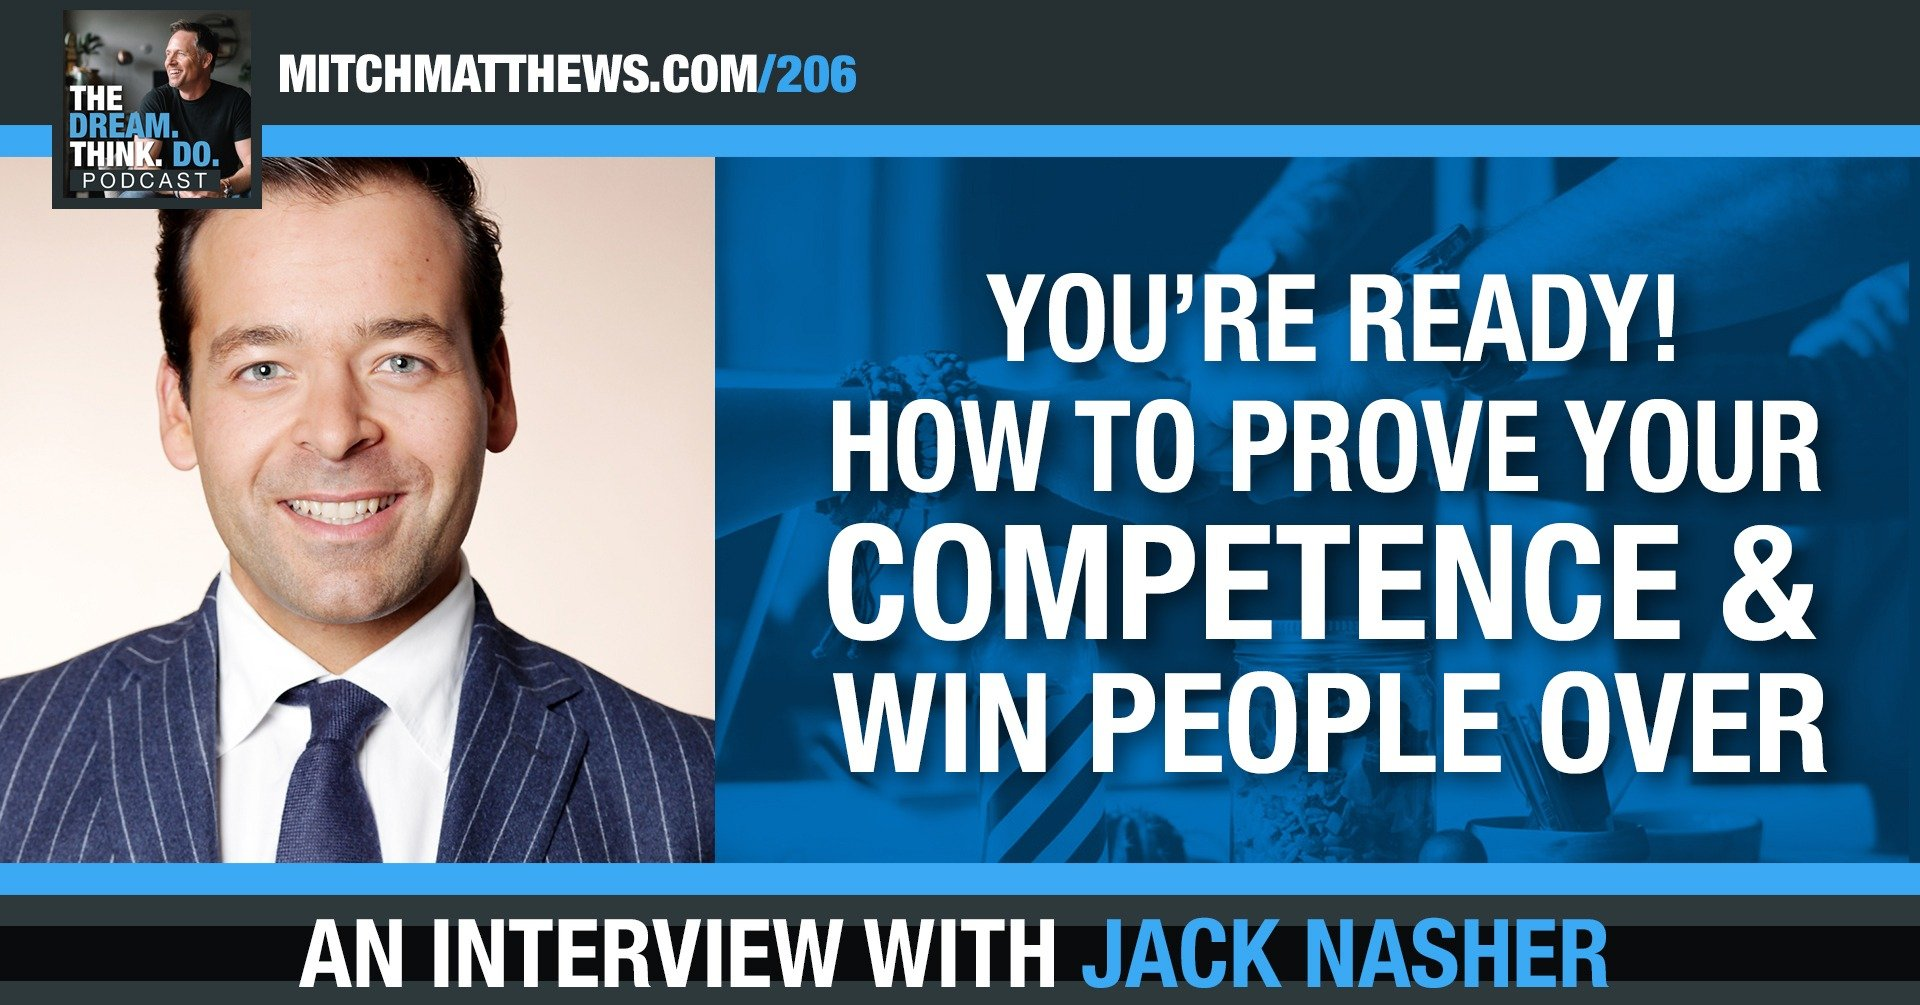 You're READY! How to Prove Your Competence & Win People Over, with Jack Nasher